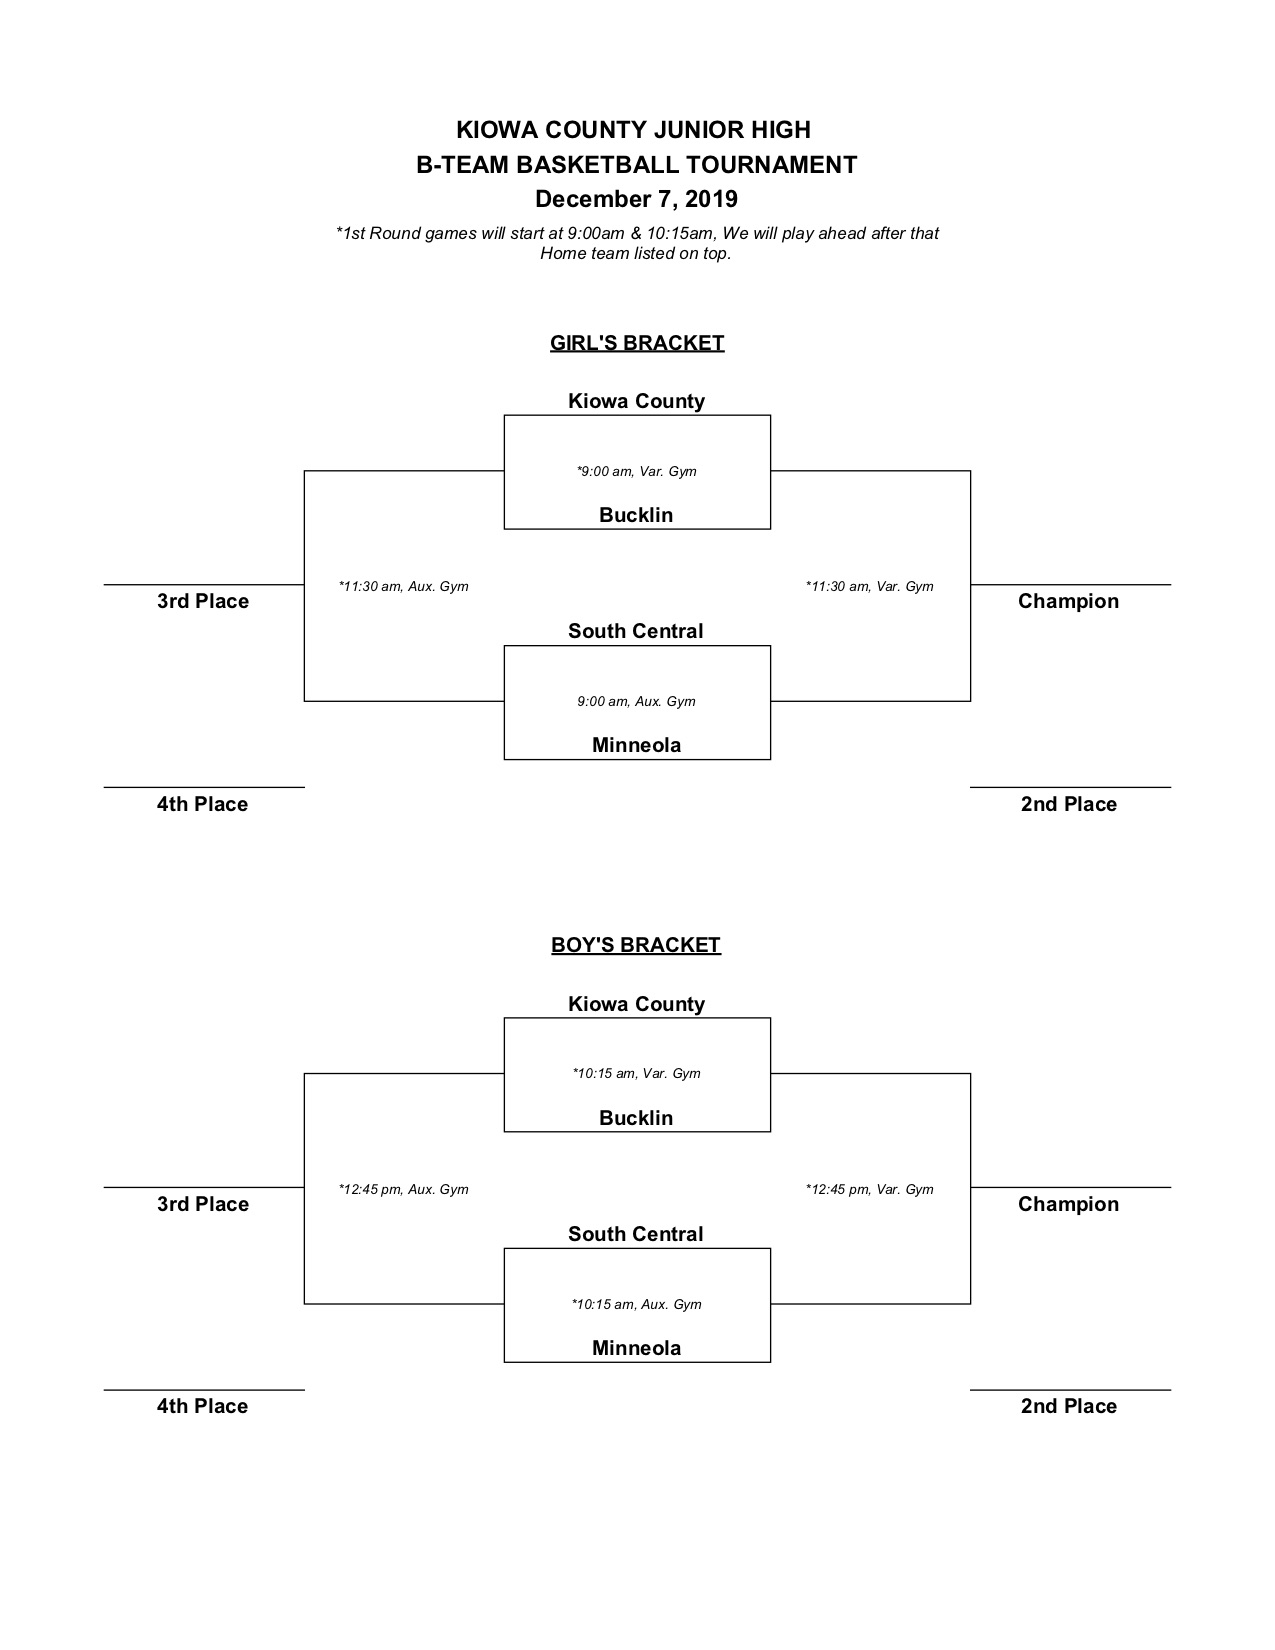 Kiowa Co JH B-Team Tournament Bracket for 12-7-19